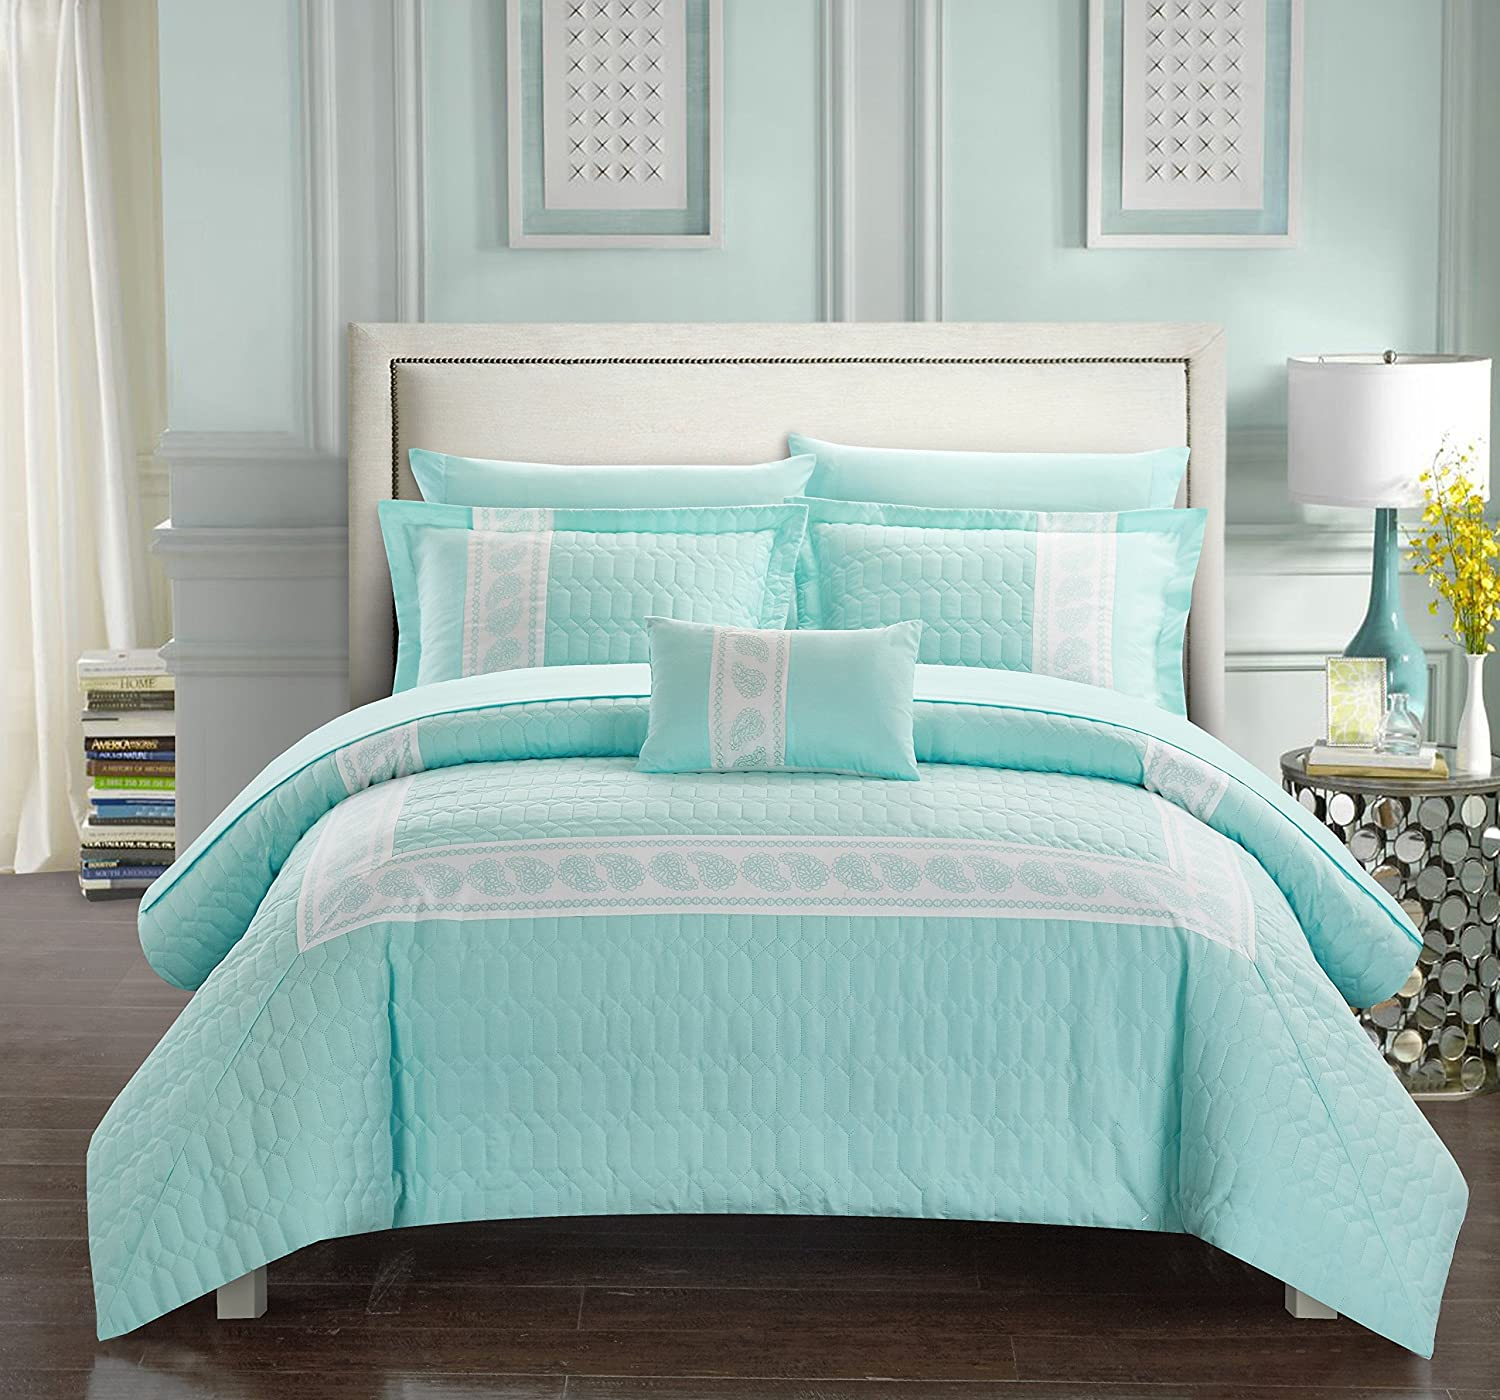 Chic Home Titian 6 Piece Comforter Hotel Collection Hexagon Embossed Paisley Print Border Design Bed in a Bag-Sheet Set Decorative Pillow Sham Included, Twin, Aqua